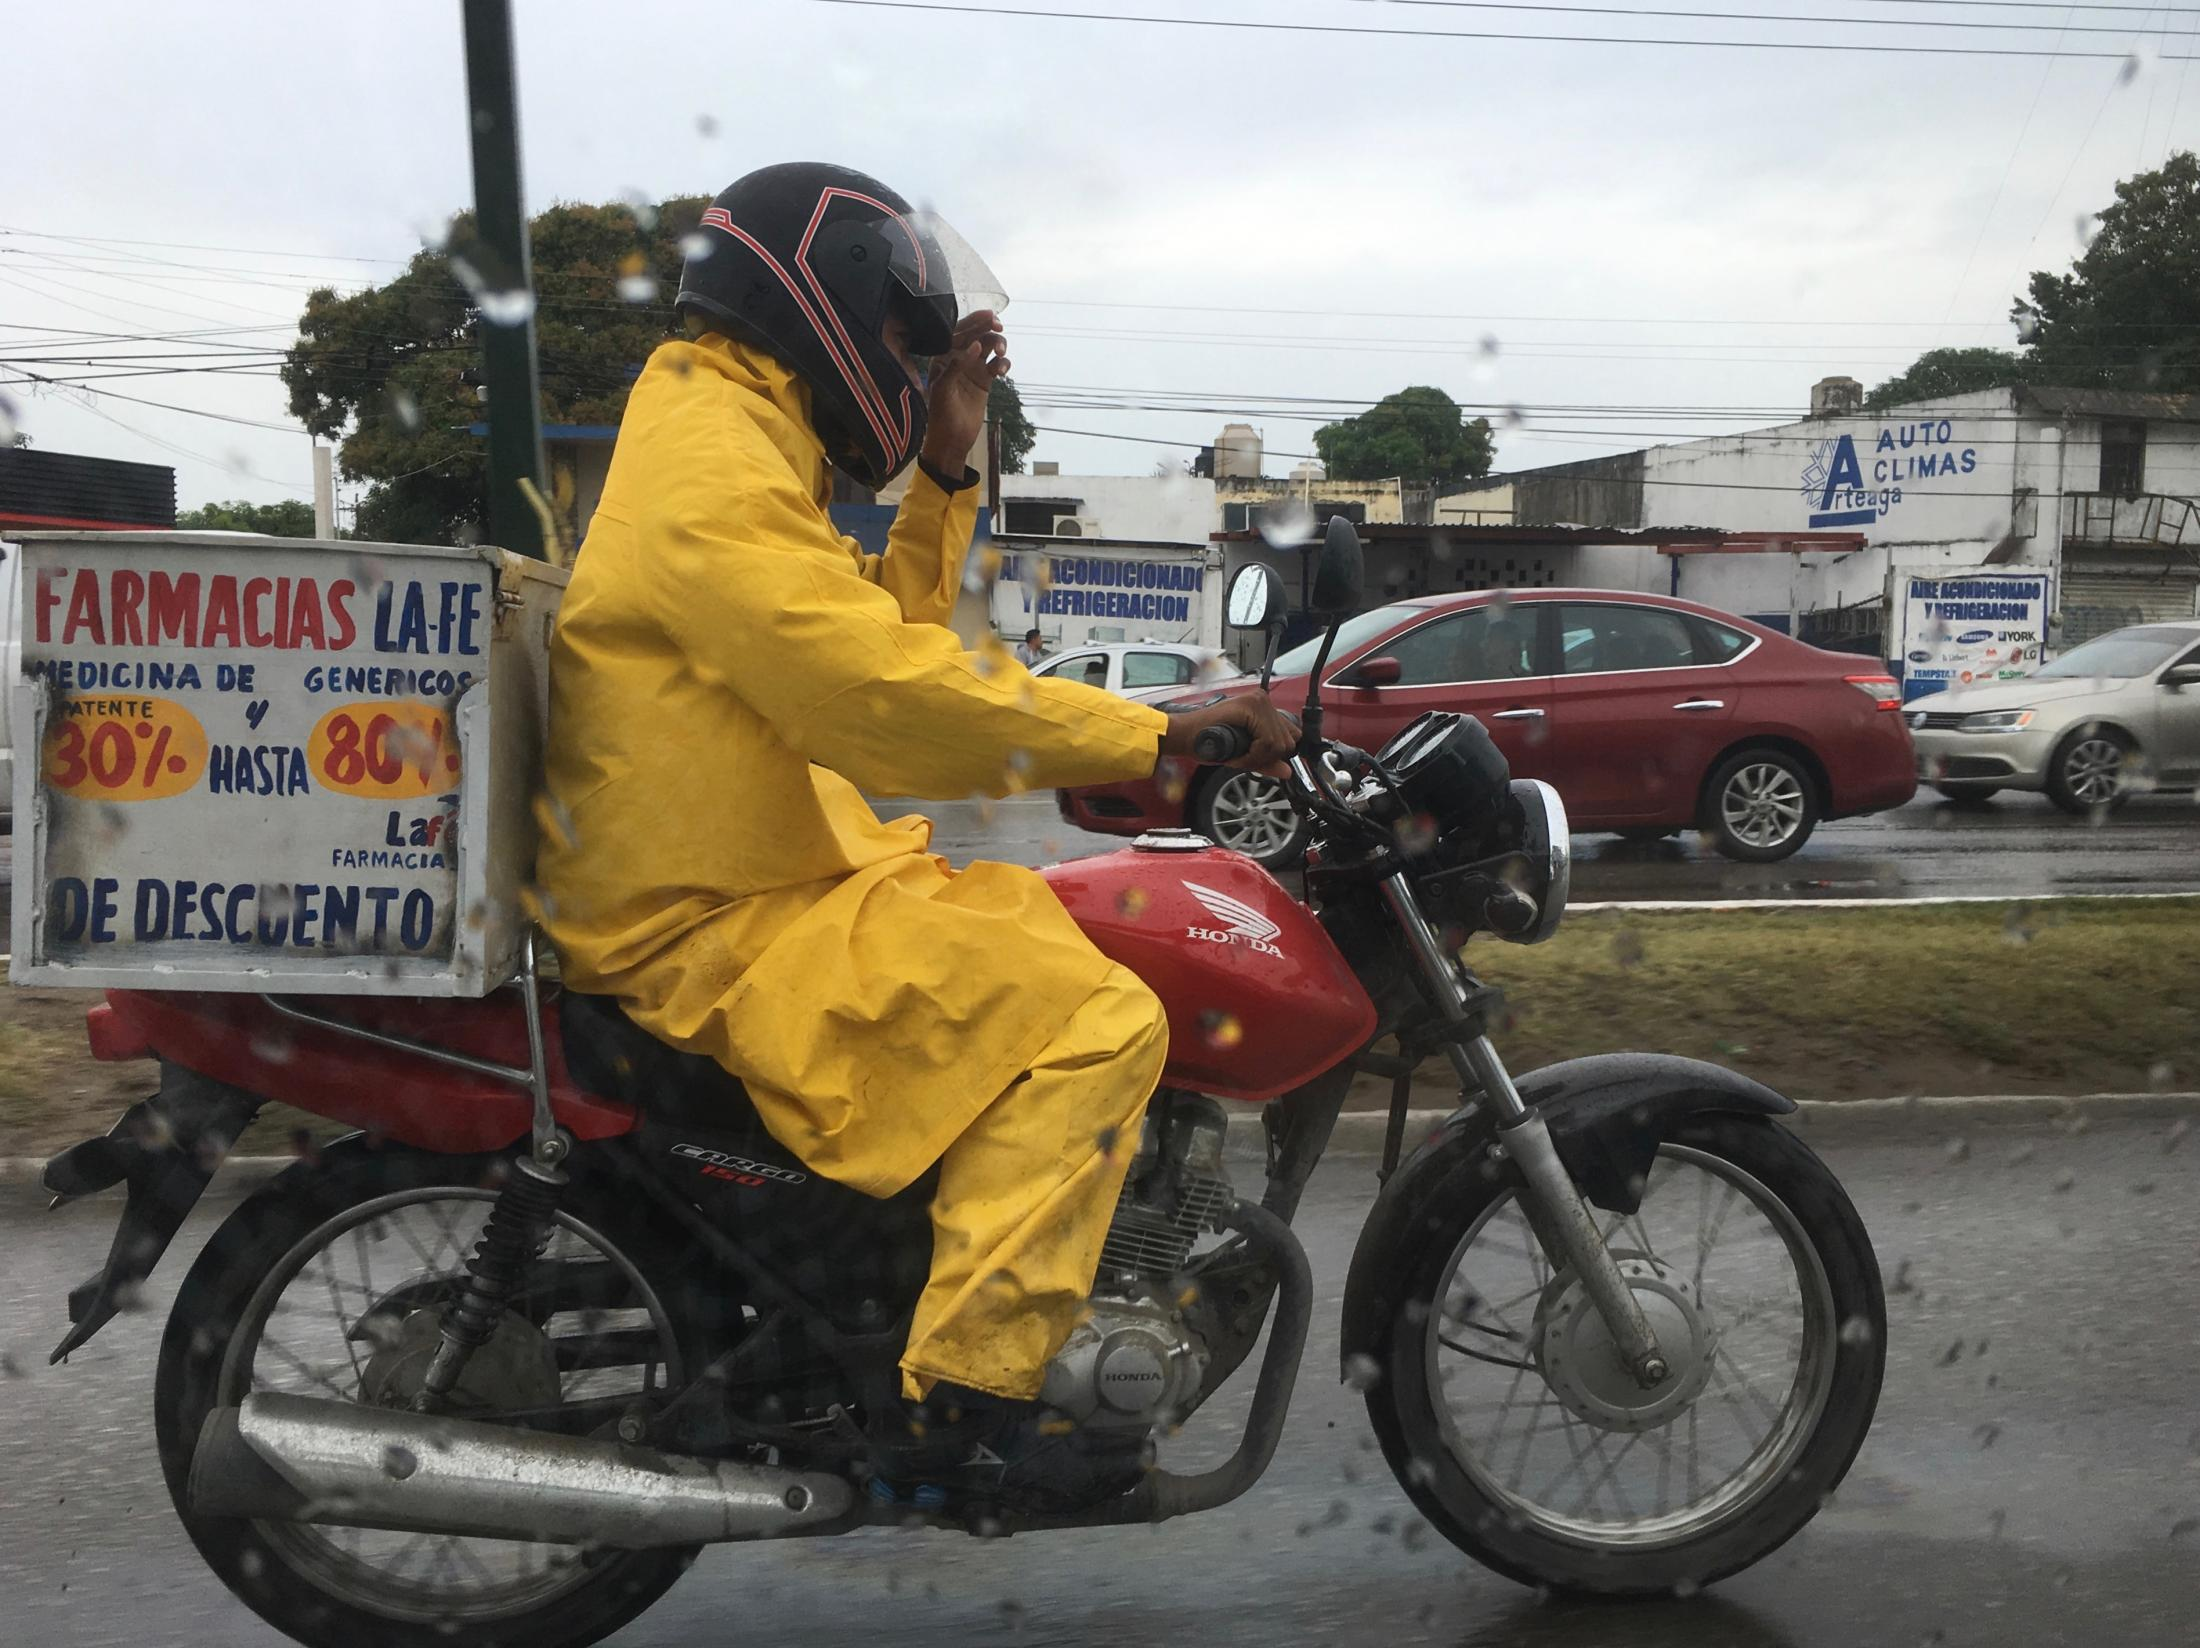 Tampico, Tamaulipas México. 2018. A pharmacy's delivery driver wears bright yellow gear to protect himself from the rain. I was on my home at noon from morning classes at my university.